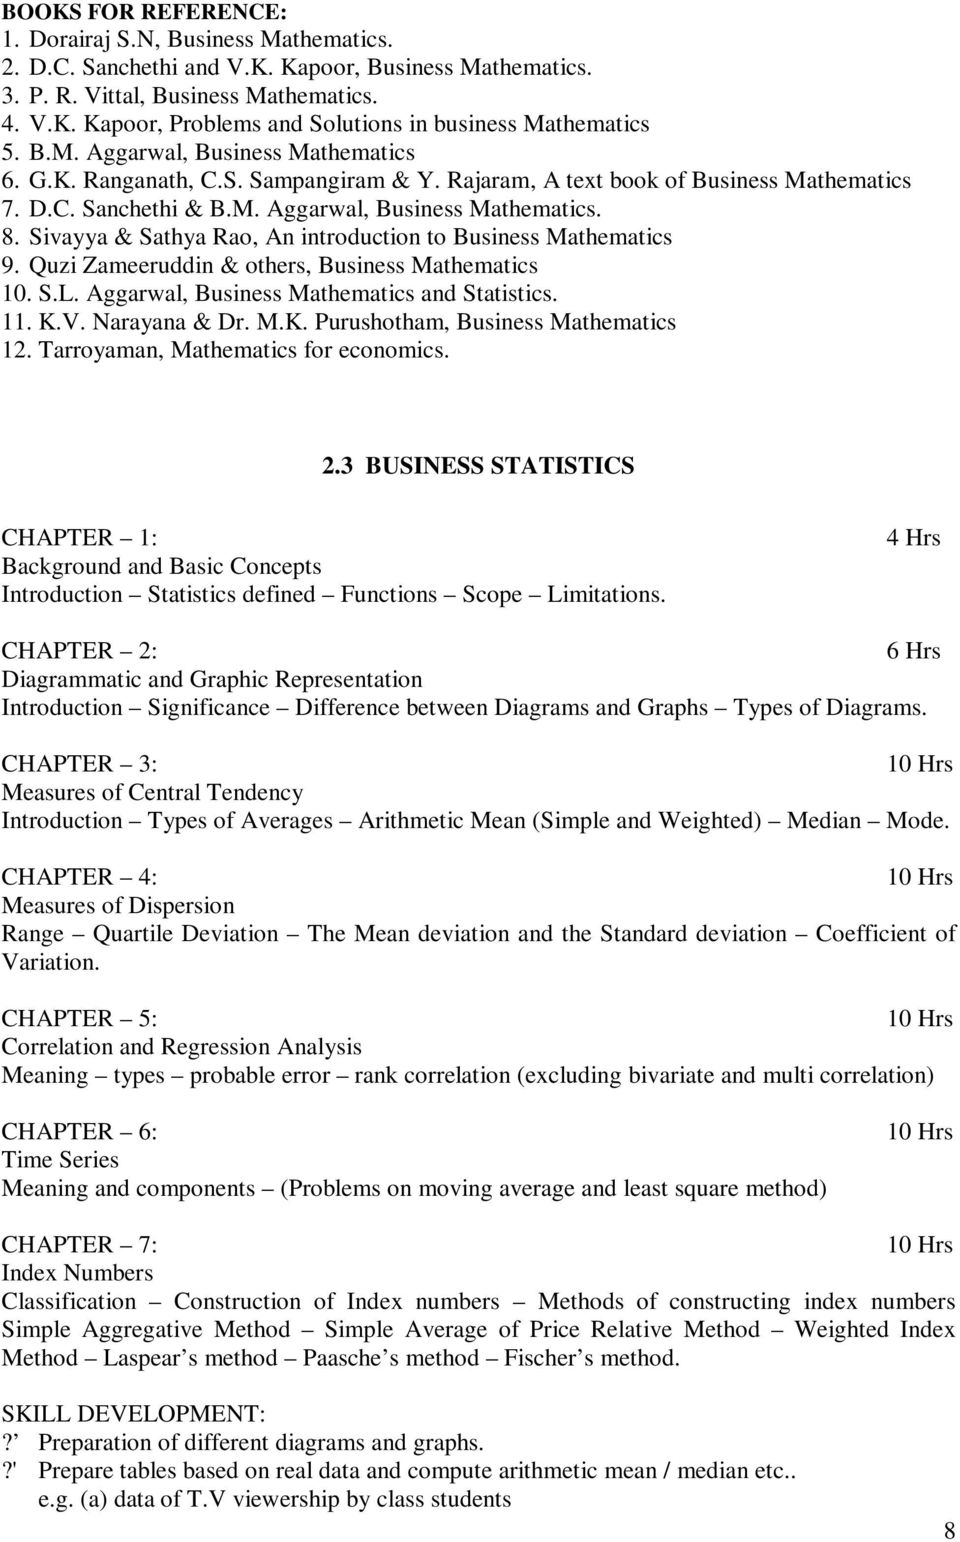 Sivayya & Sathya Rao, An introduction to Business Mathematics 9. Quzi Zameeruddin & others, Business Mathematics 10. S.L. Aggarwal, Business Mathematics and Statistics. 11. K.